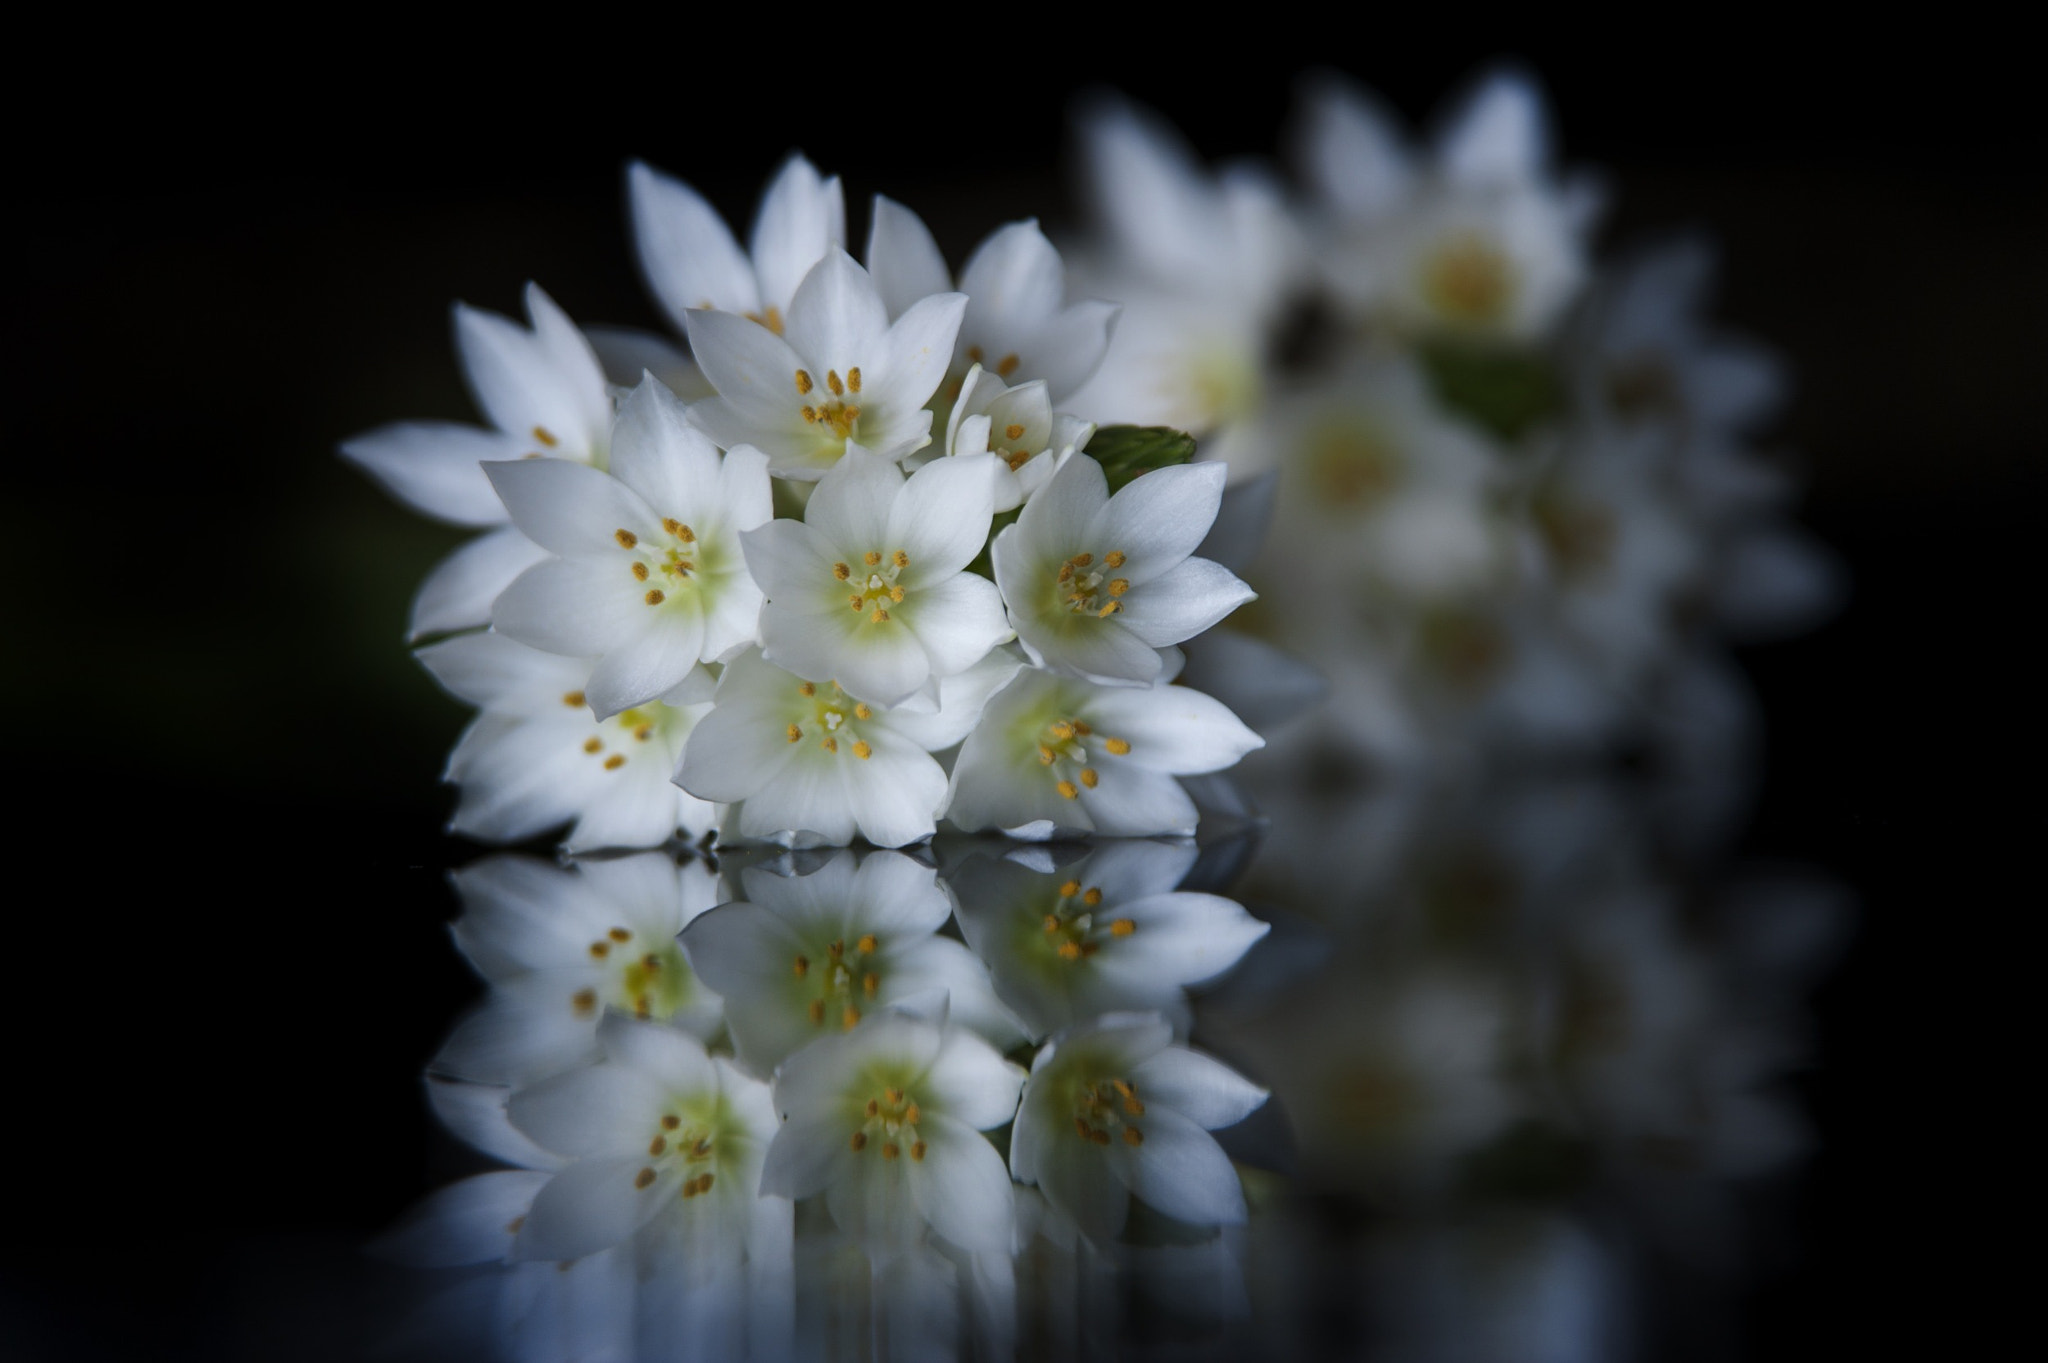 Photograph White flowers and reflections by Cristobal Garciaferro Rubio on 500px